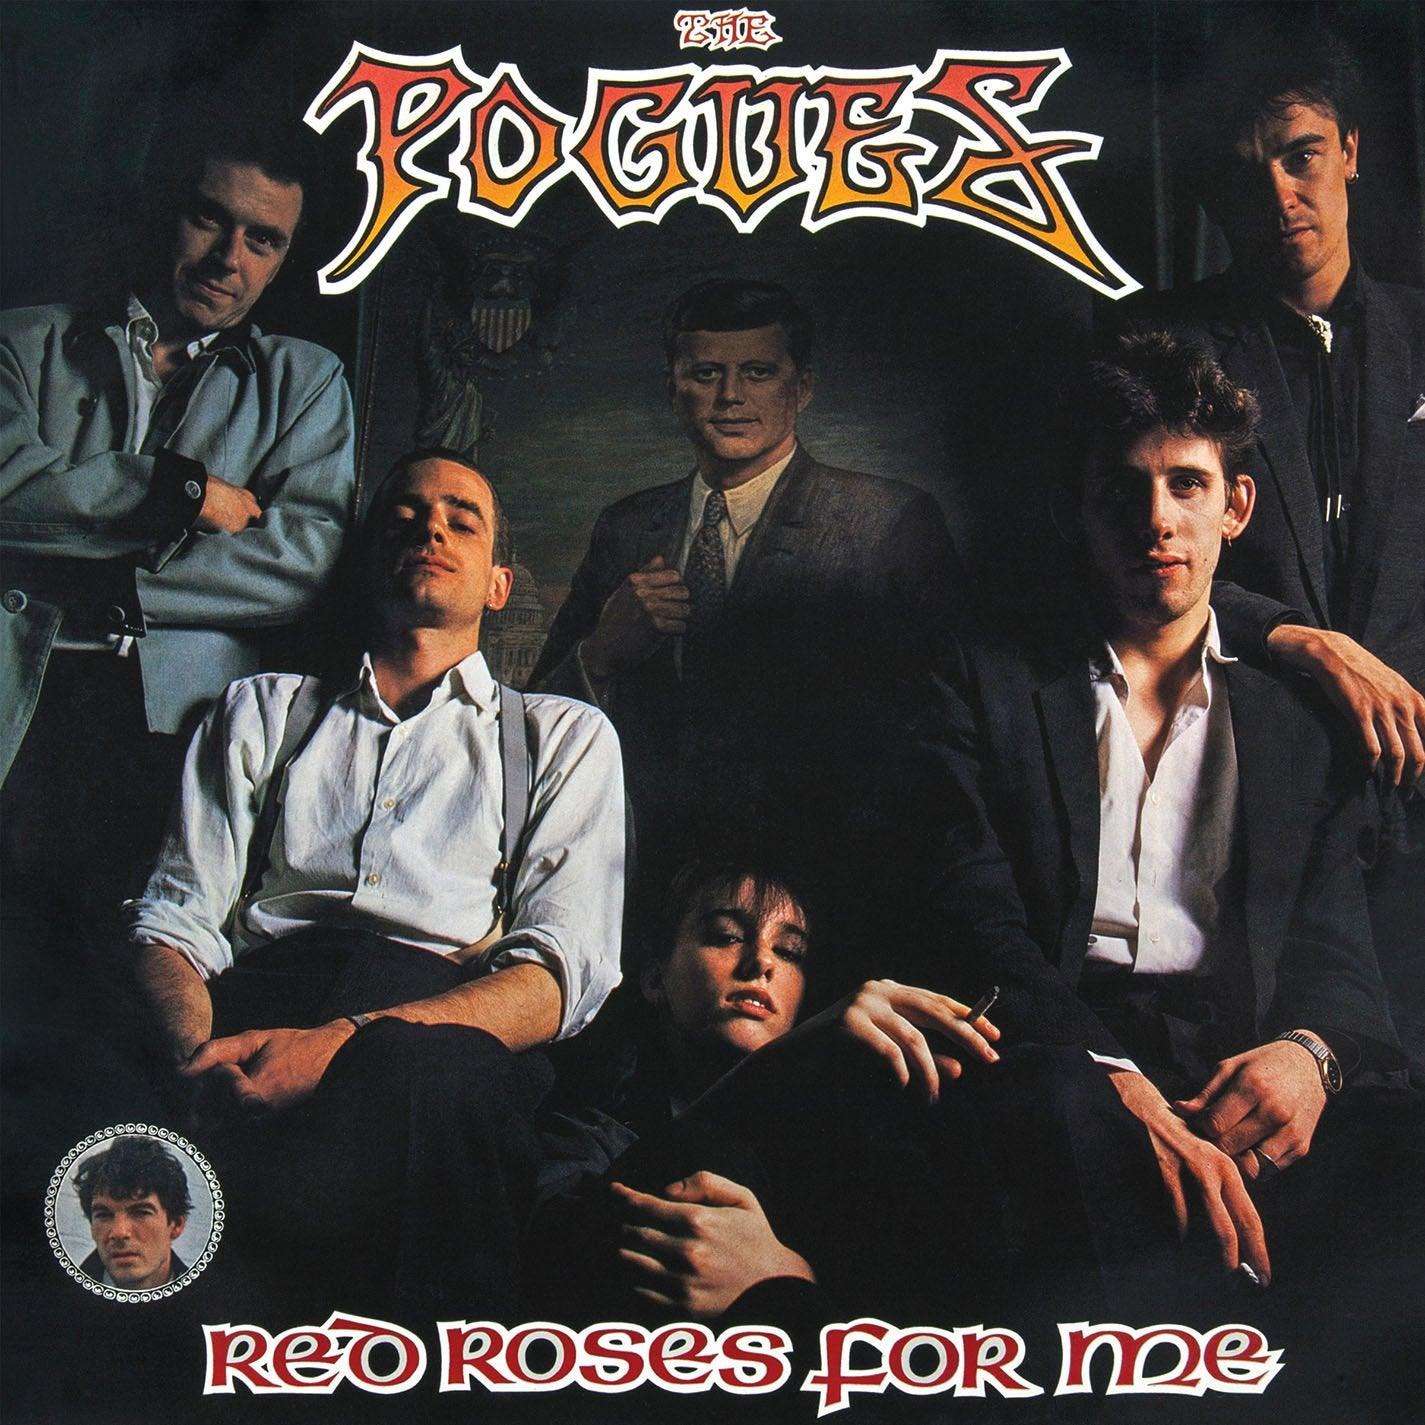 THE POGUES - RED ROSES FOR ME - VINYL LP - Wah Wah Records